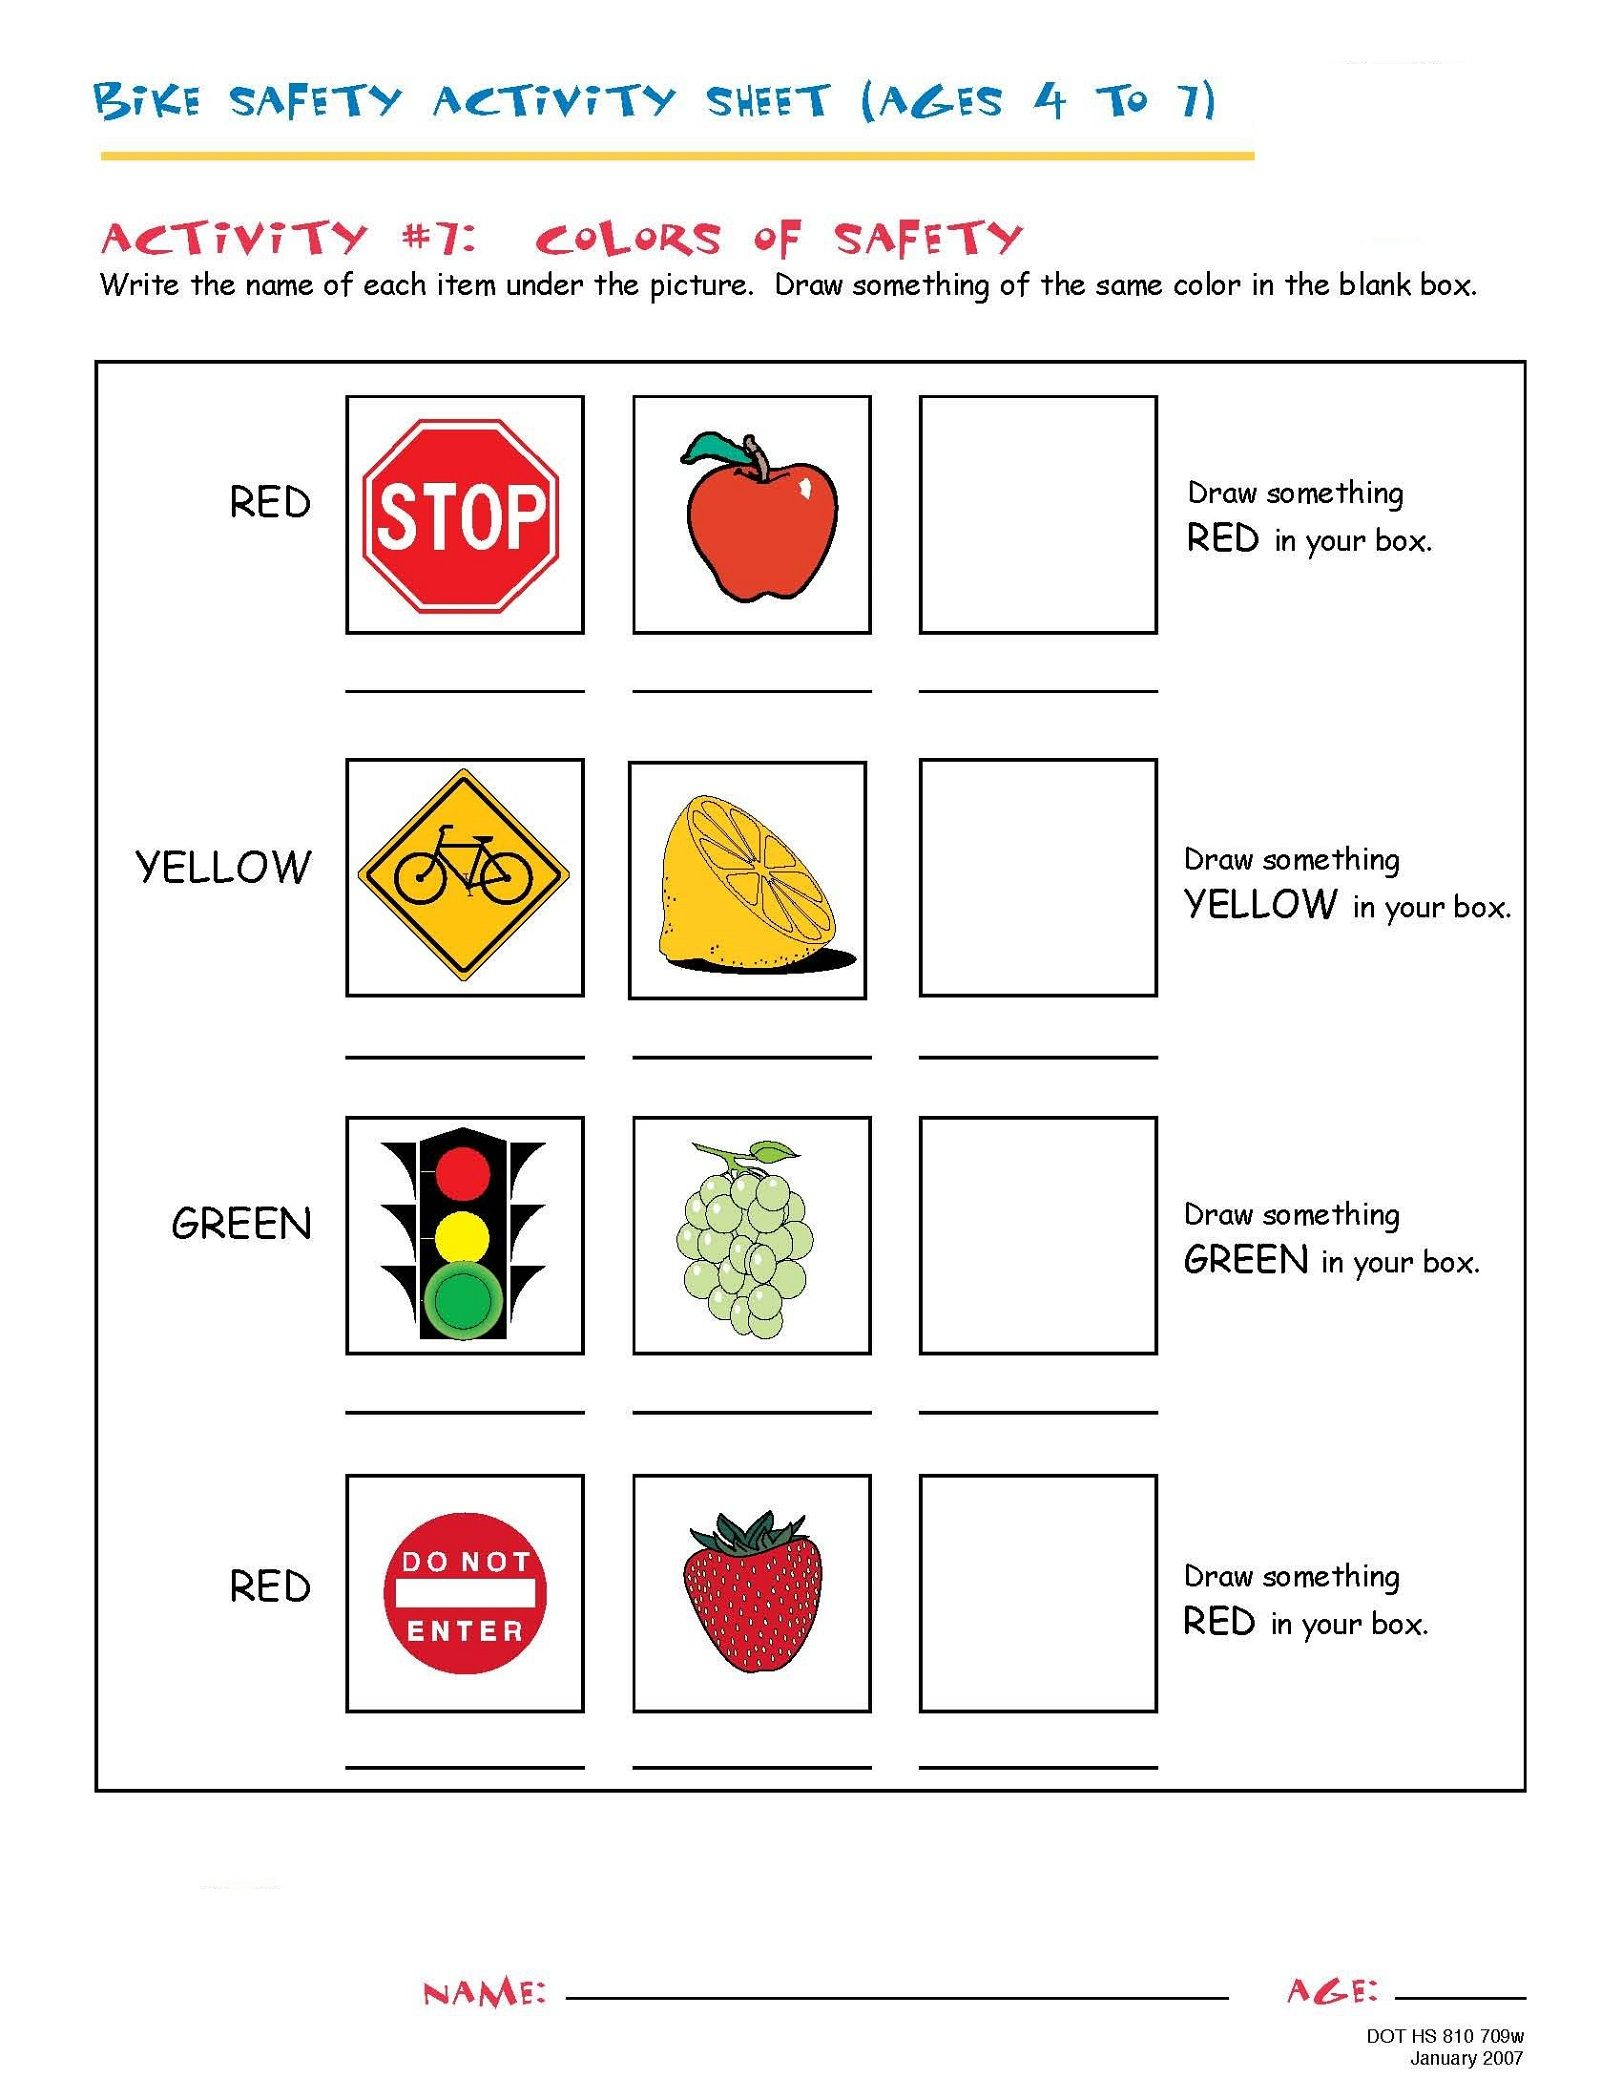 Fun And Printable Worksheets For 4 Year Old In 2021 Bike Safety Activities Bike Safety Pedestrian Safety Activities [ 2100 x 1622 Pixel ]